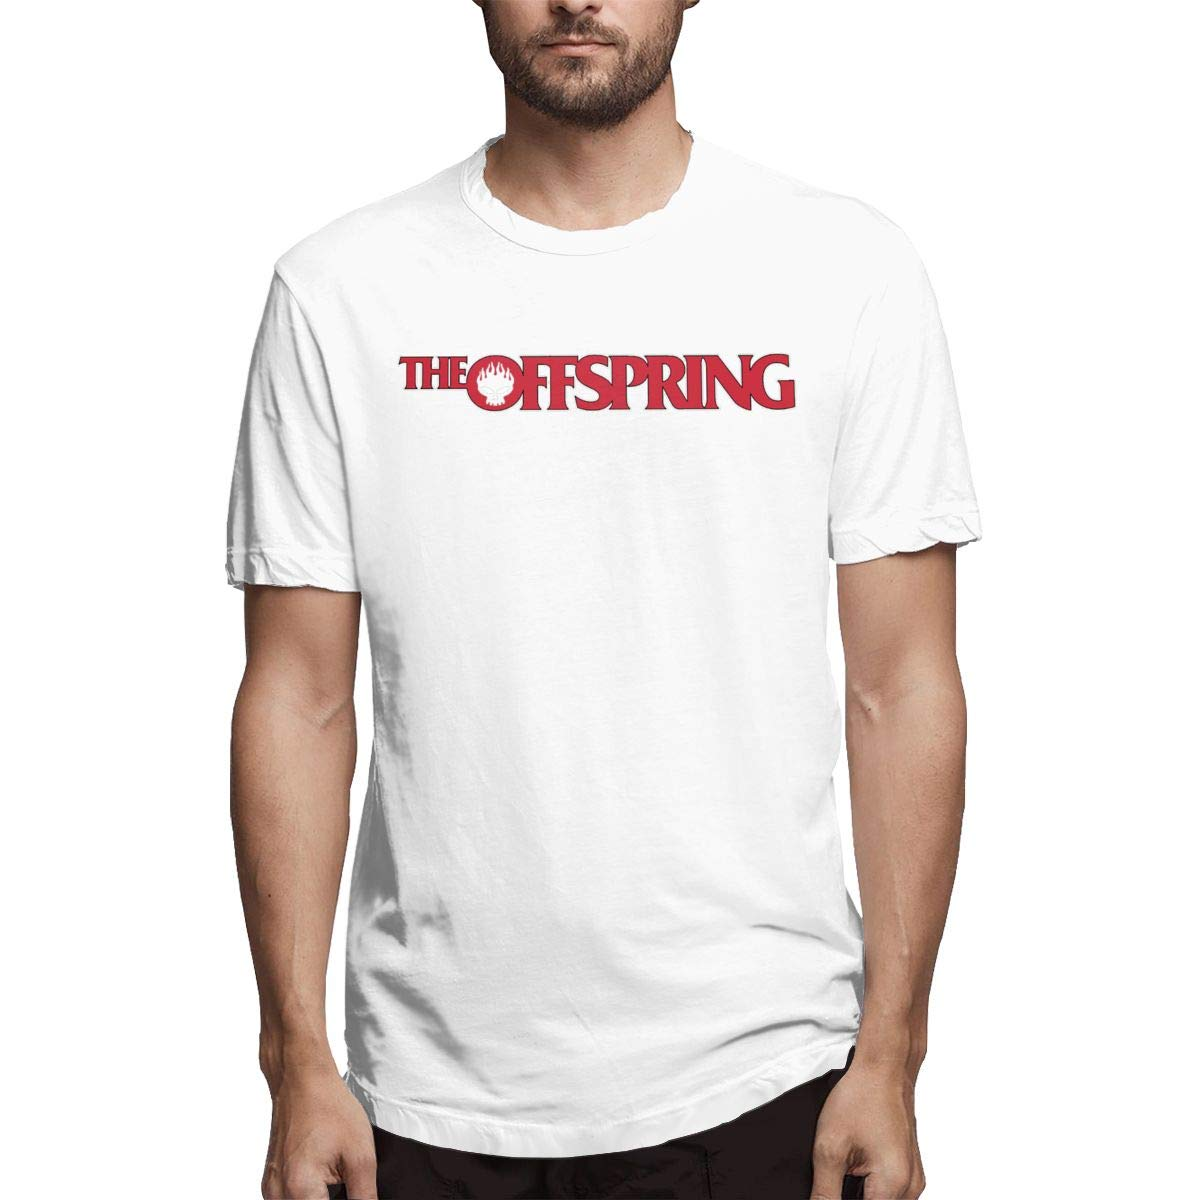 Smooffly S The Offspring Comfortable Crew Neck Short Sleeves Ts